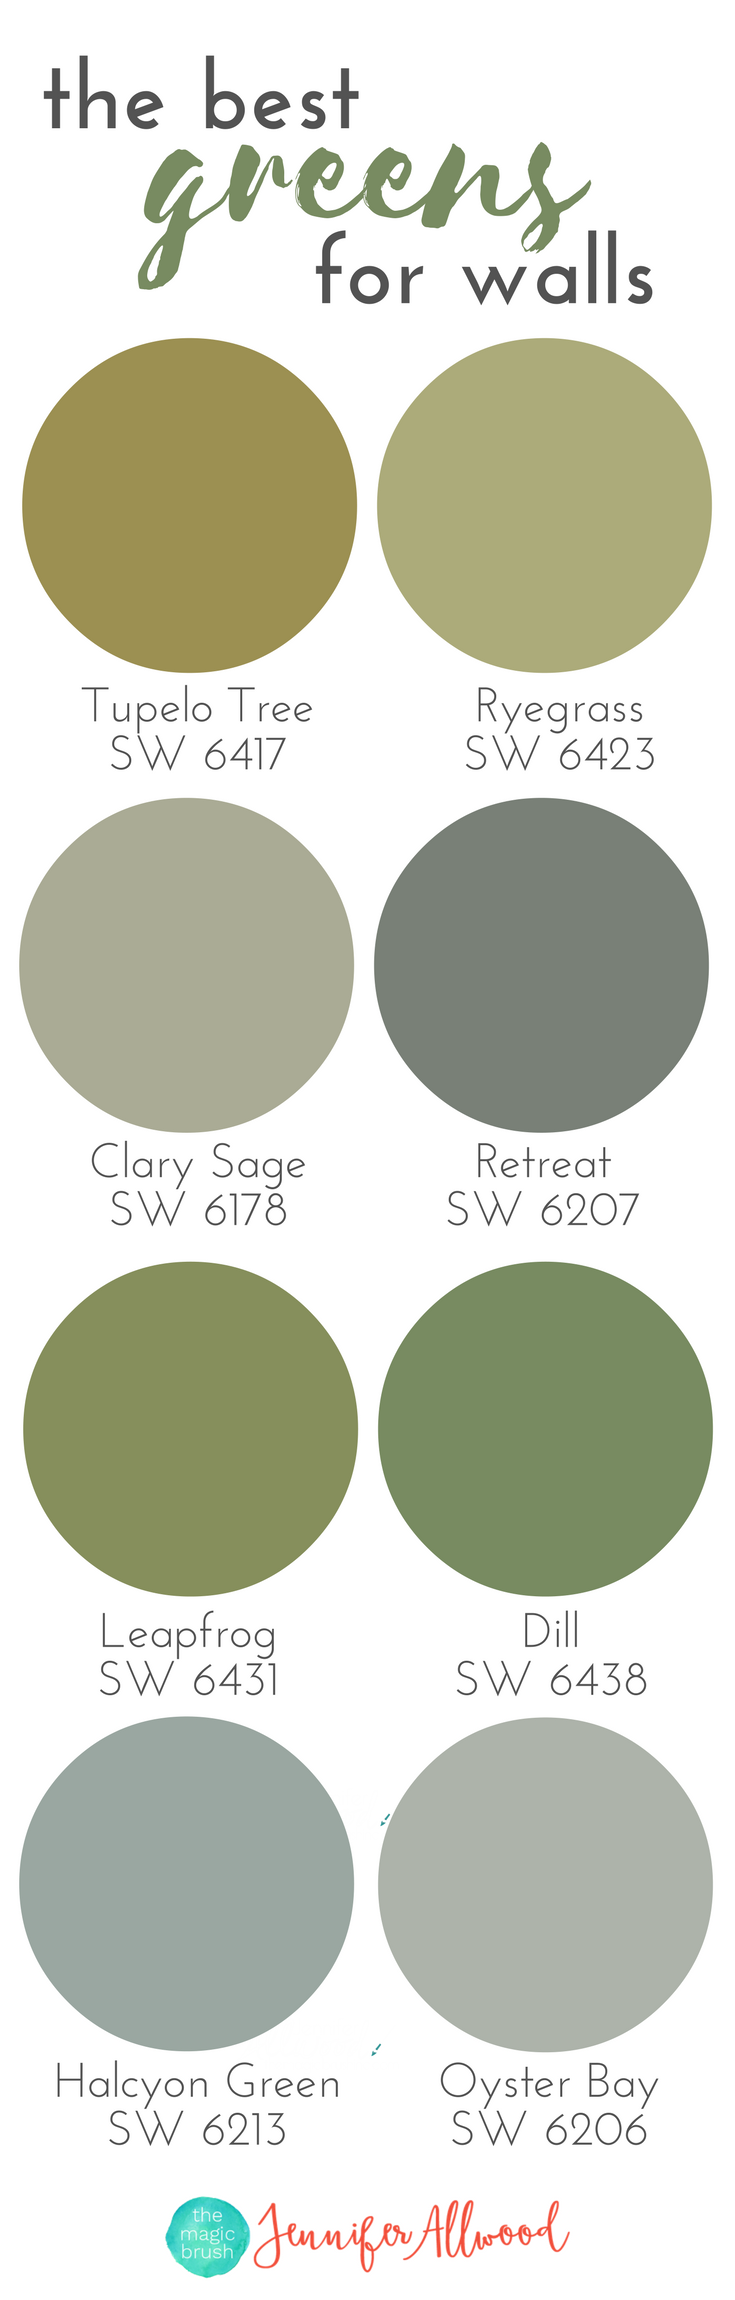 Best Greens For Walls Paint Color Ideas Farmhouse Interior Professional Wall Advice From Jennifer Allwood Of The